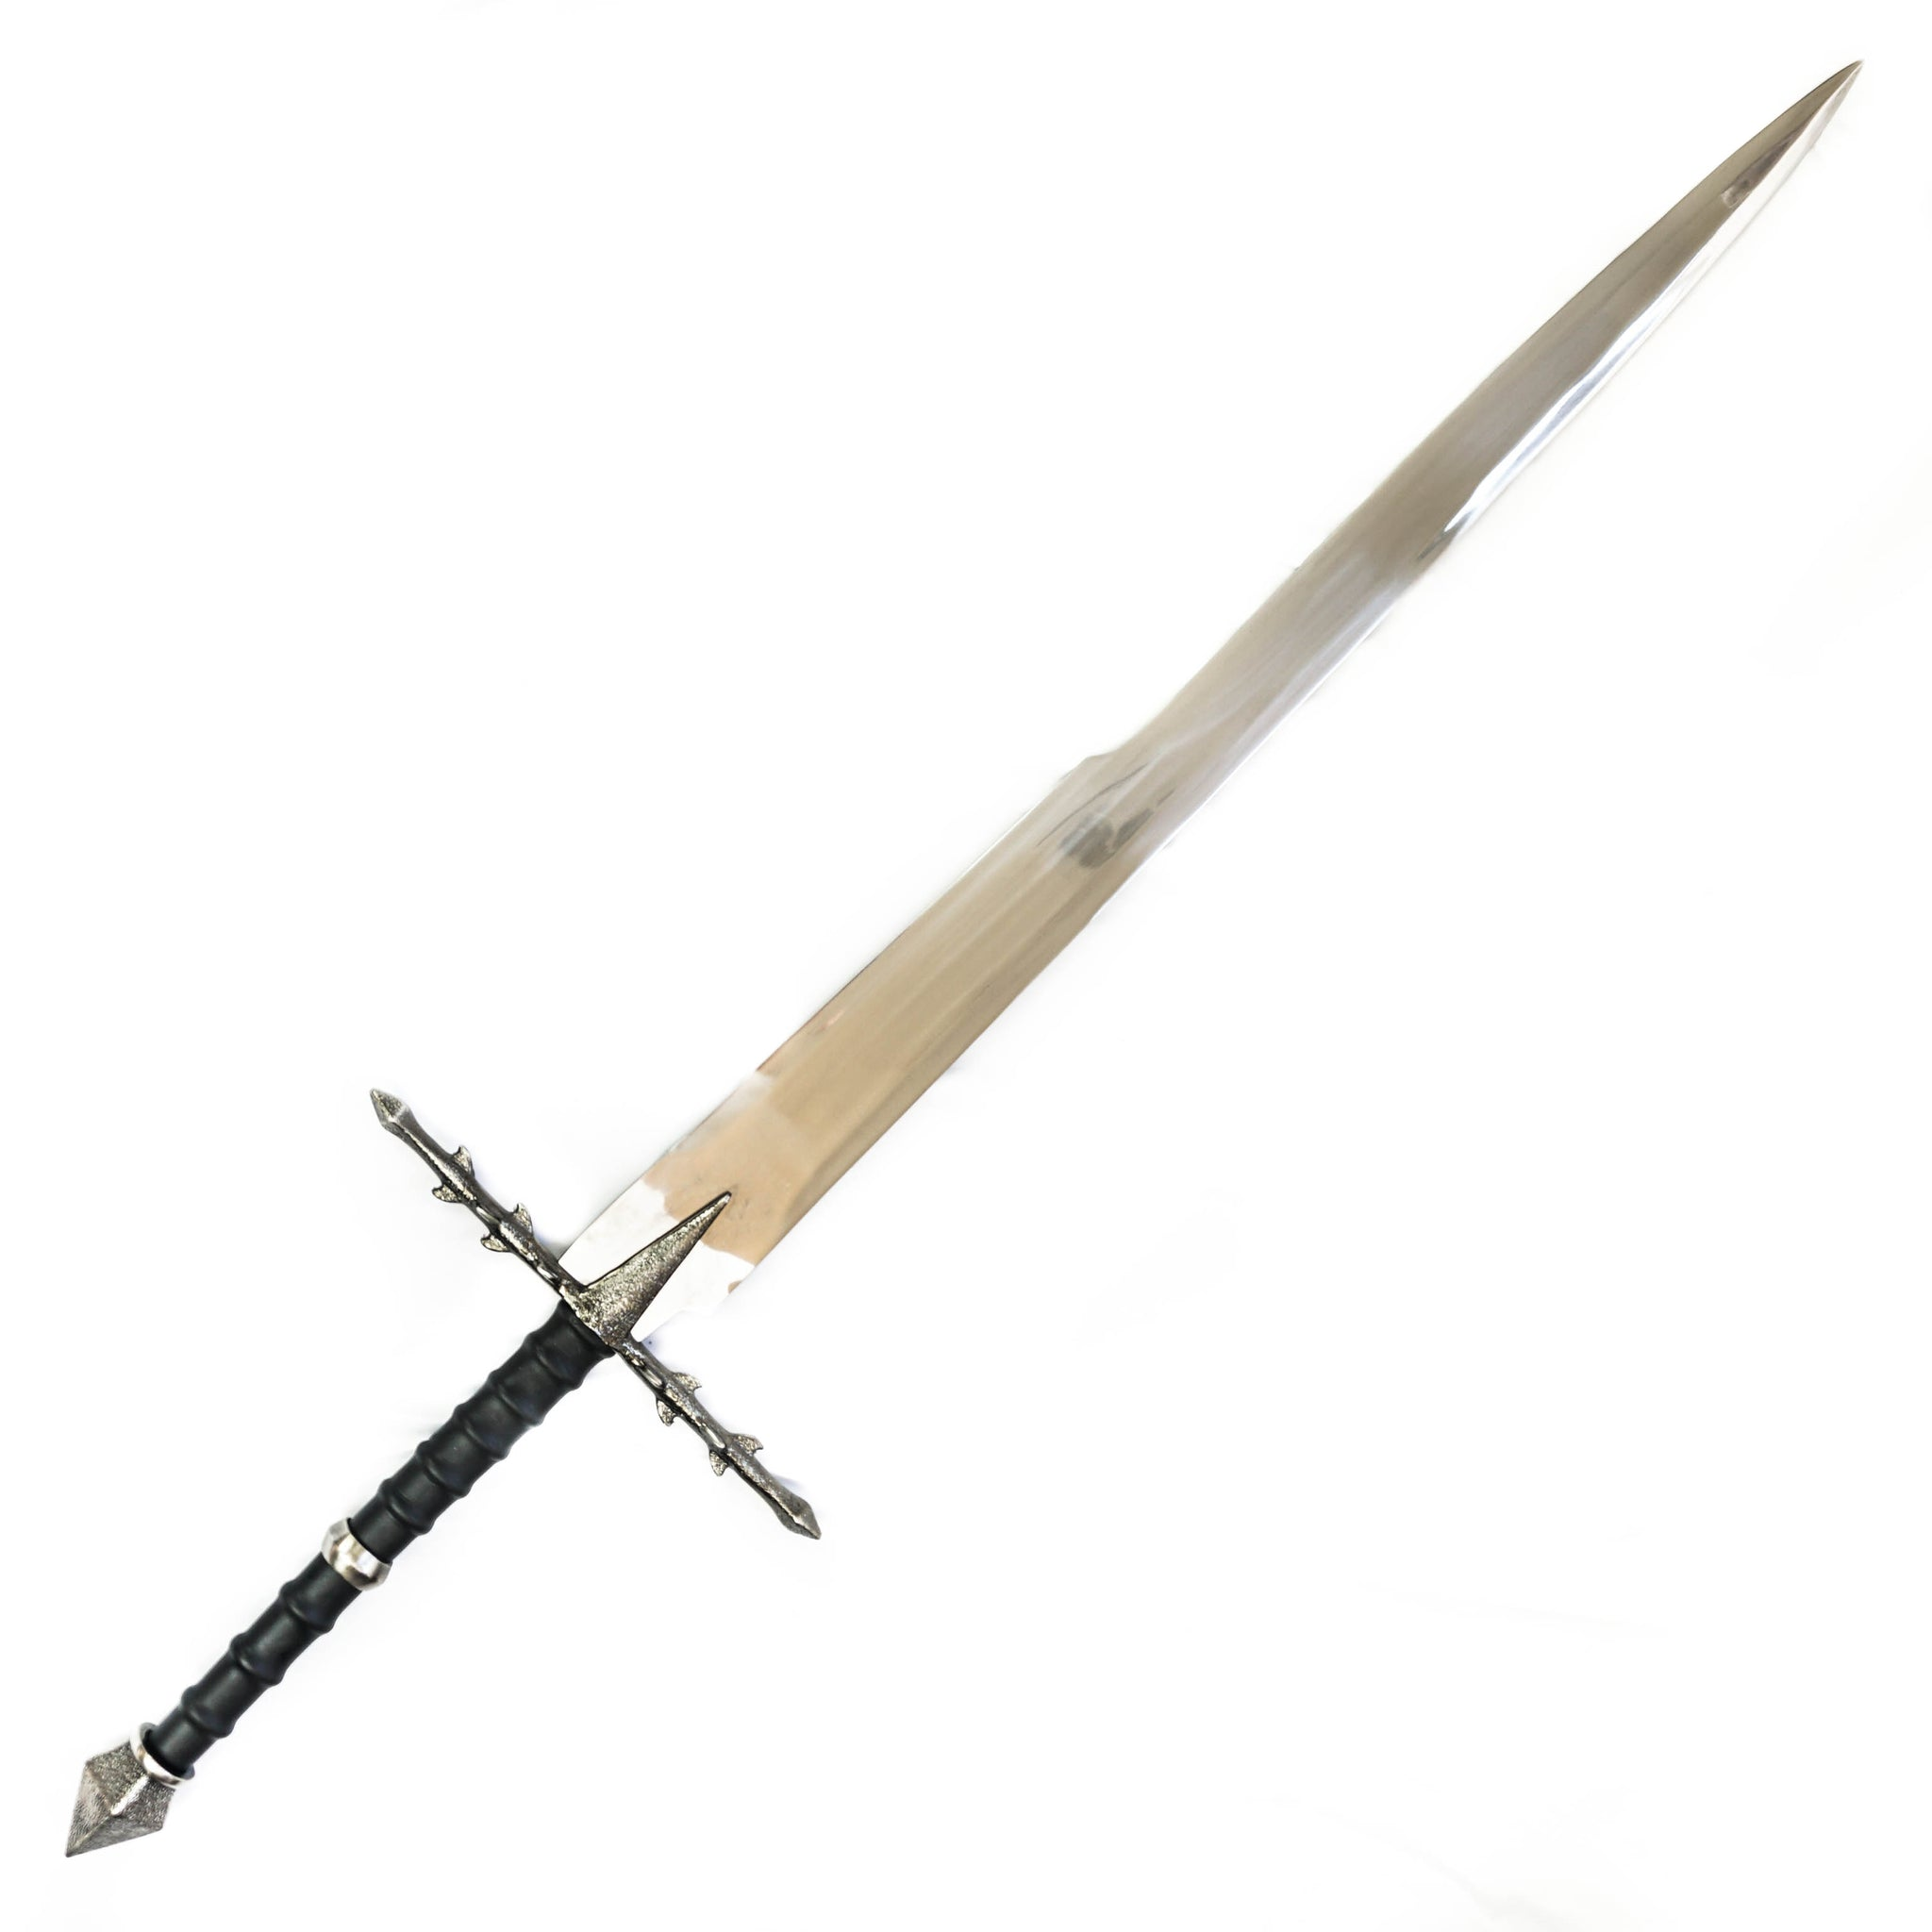 Longsword/ Bastard Sword- High Carbon 1095 Steel Sword With Clay Temper- 45""